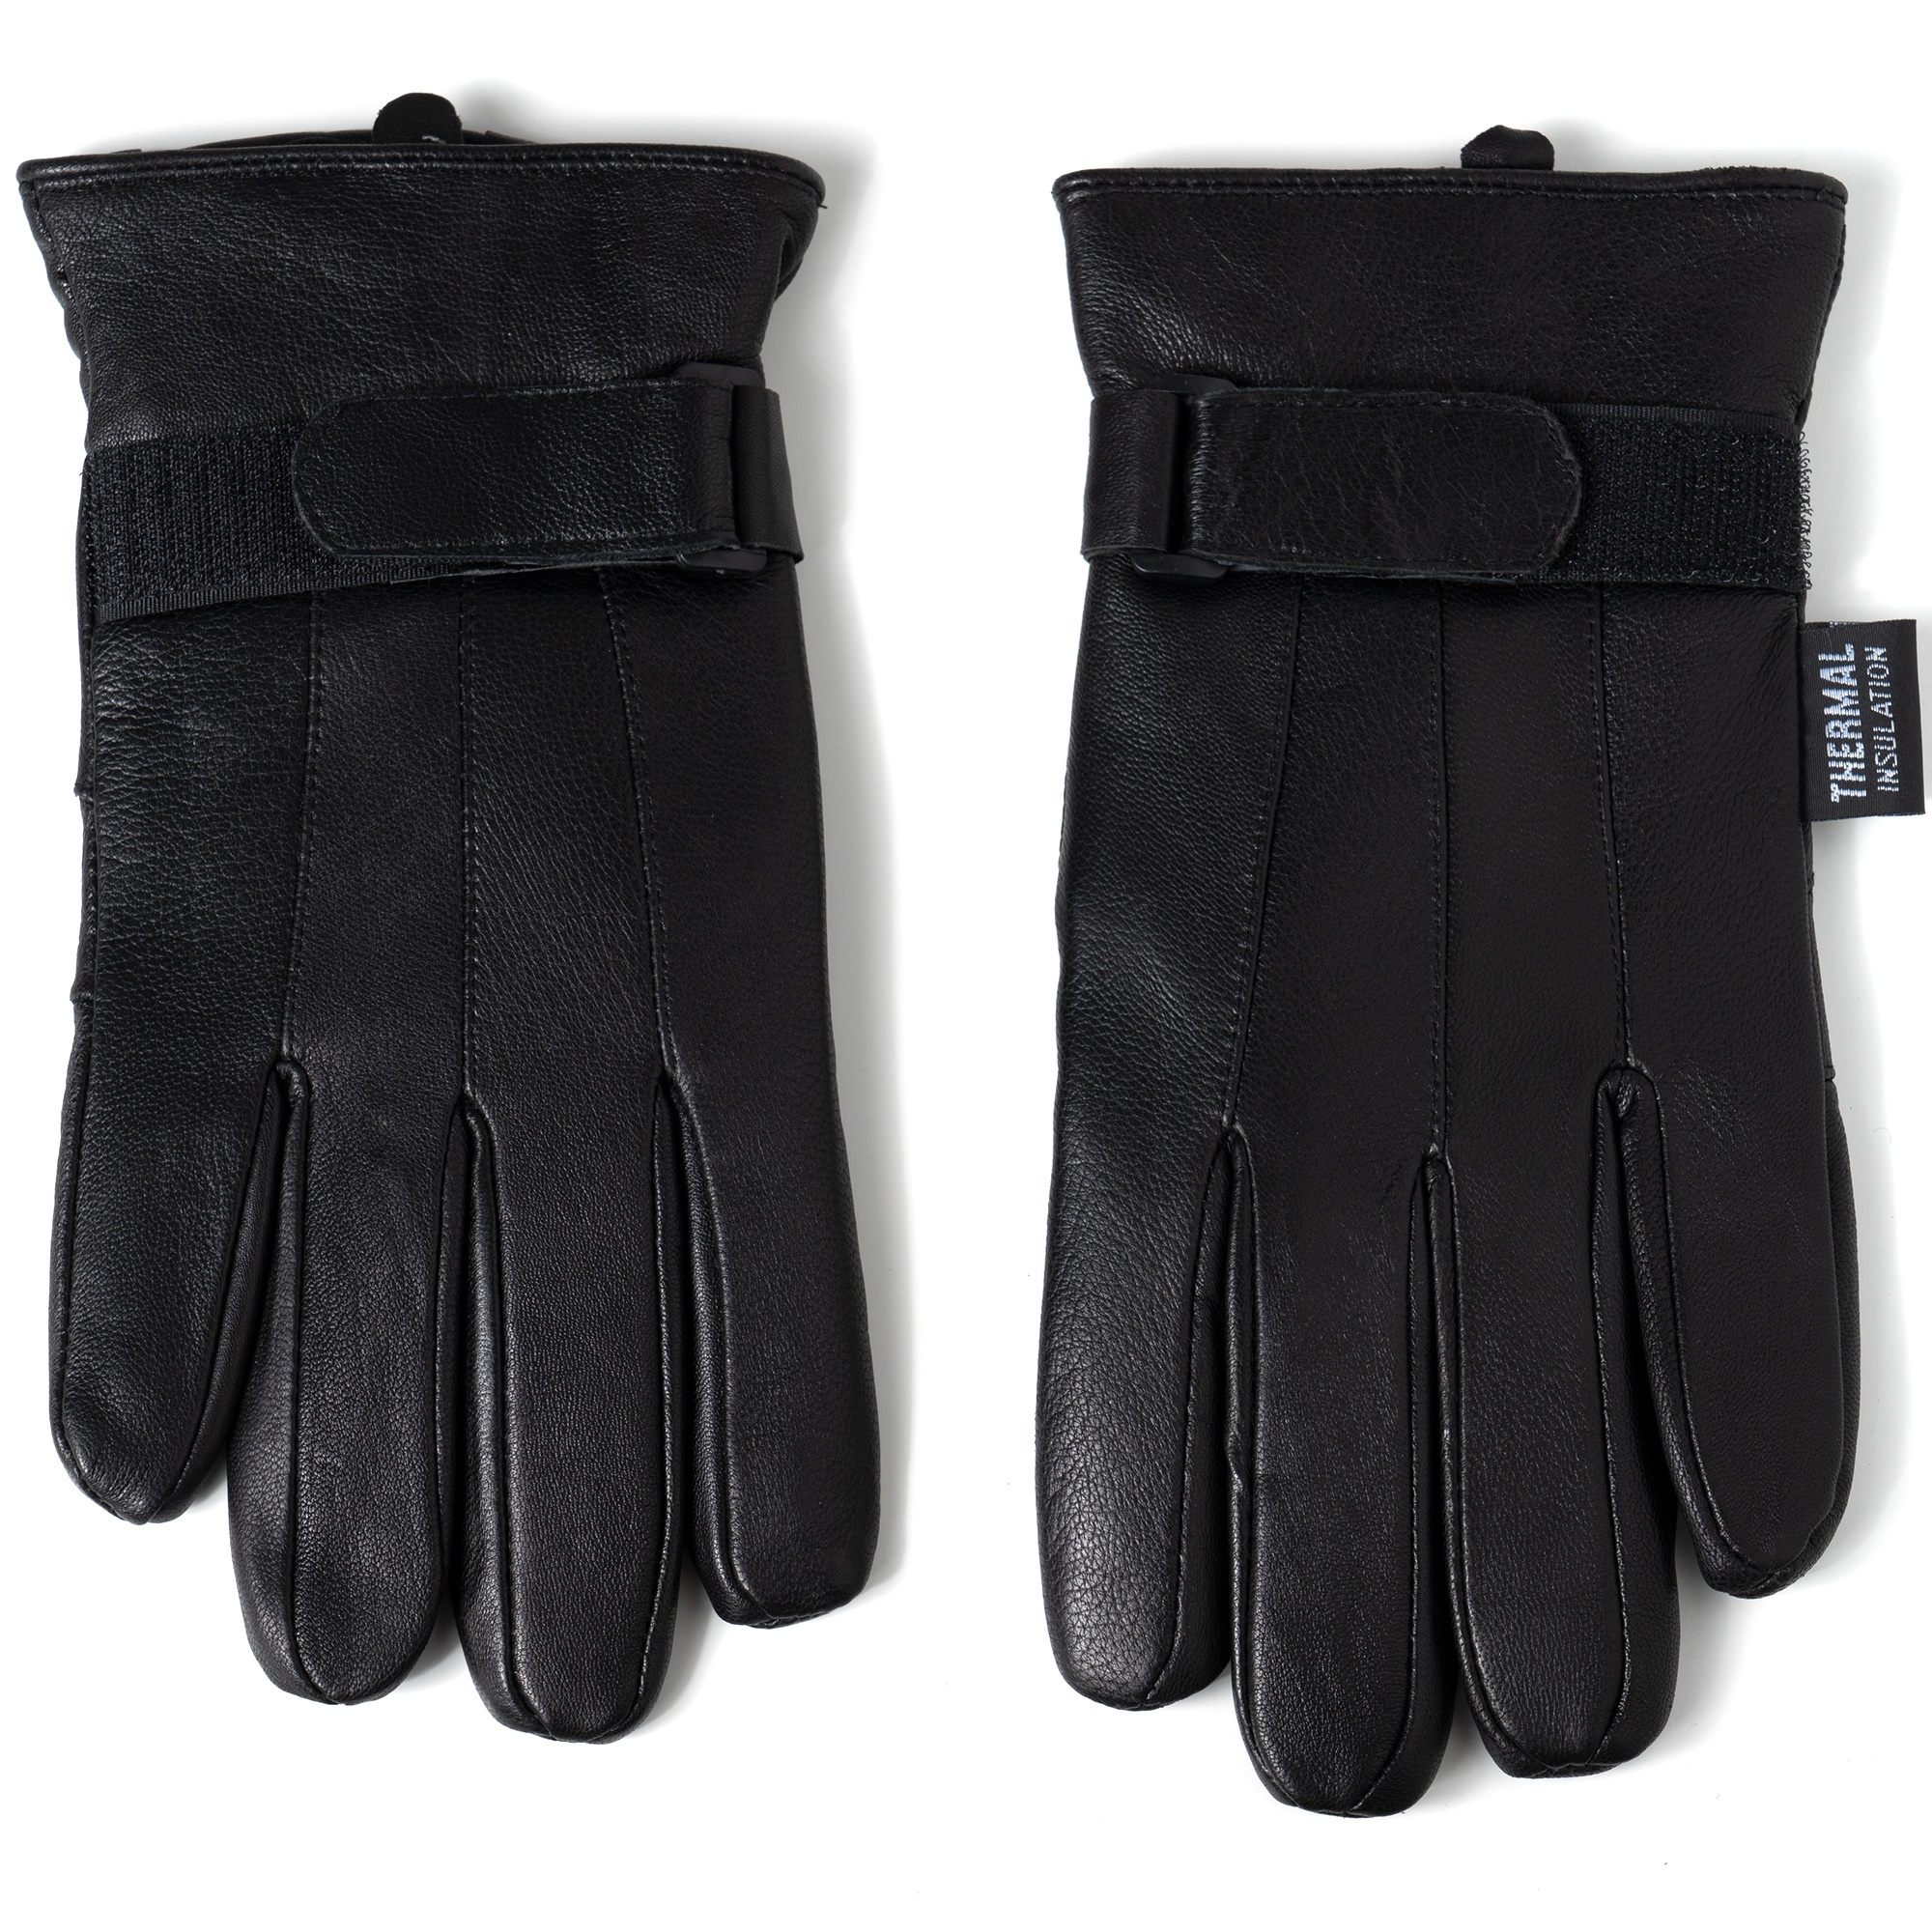 Alpine-Swiss-Mens-Gloves-Dressy-Genuine-Leather-Warm-Thermal-Lined-Wrist-Strap thumbnail 17